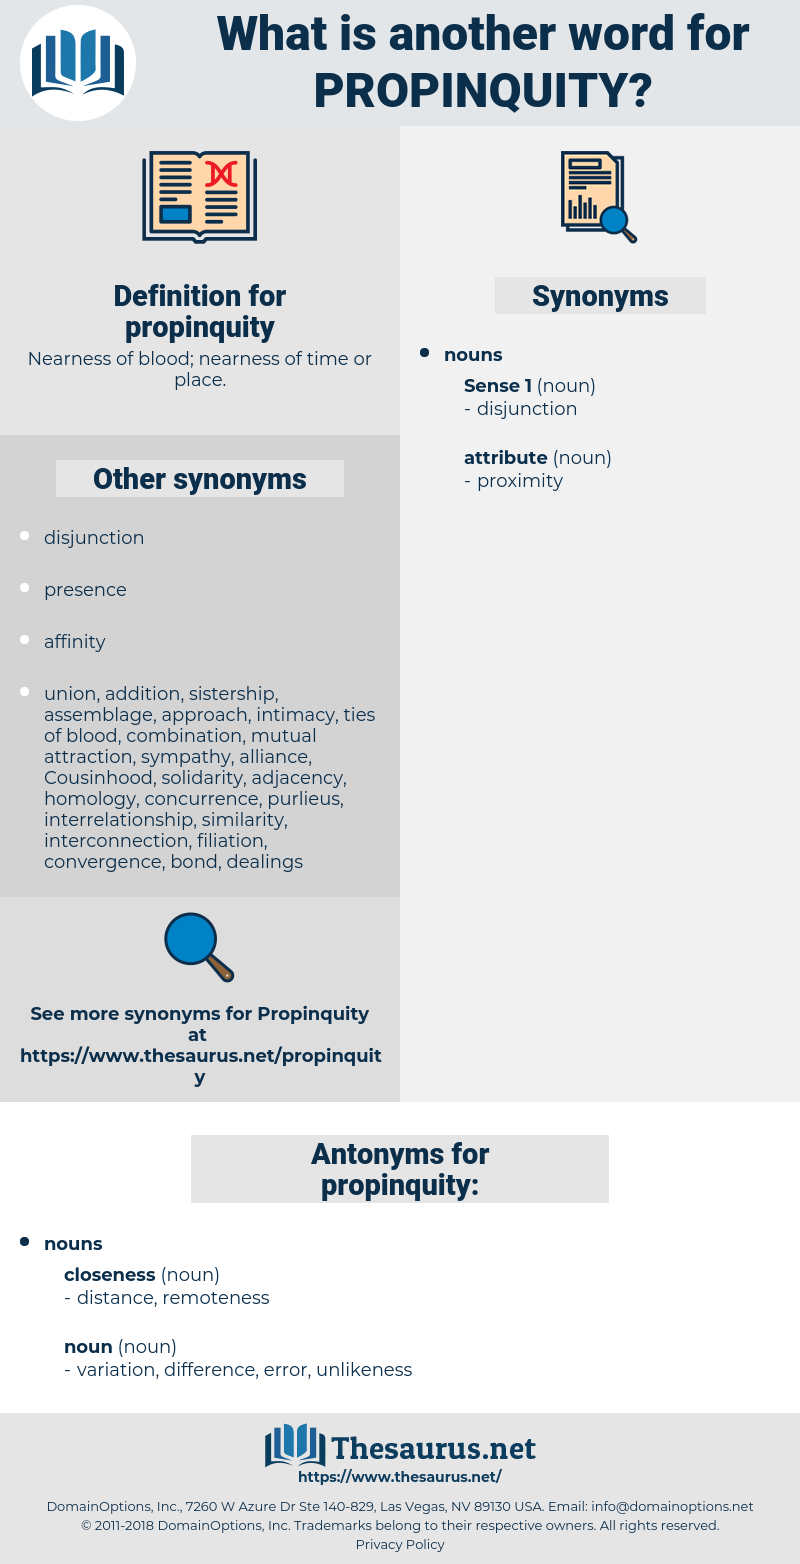 propinquity, synonym propinquity, another word for propinquity, words like propinquity, thesaurus propinquity